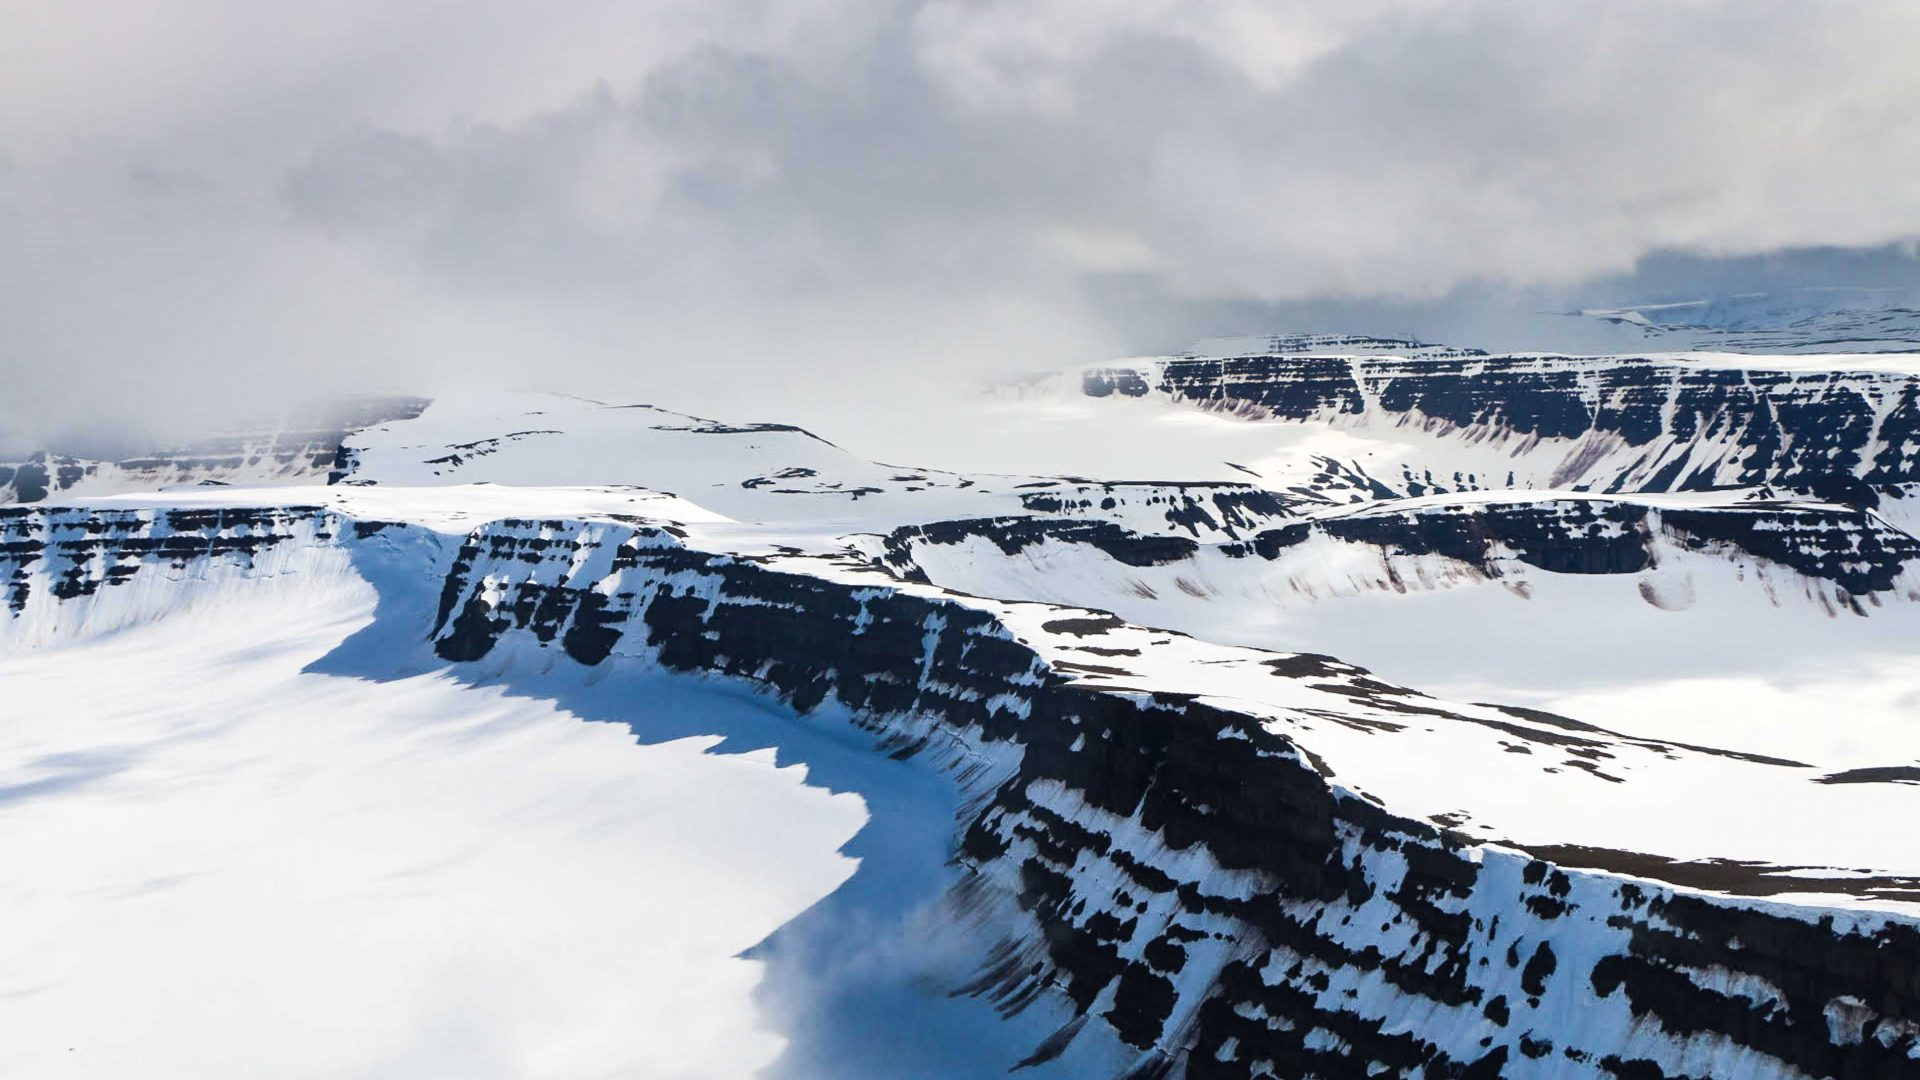 Snow covers mountains, glaciers and volcanoes in Iceland.